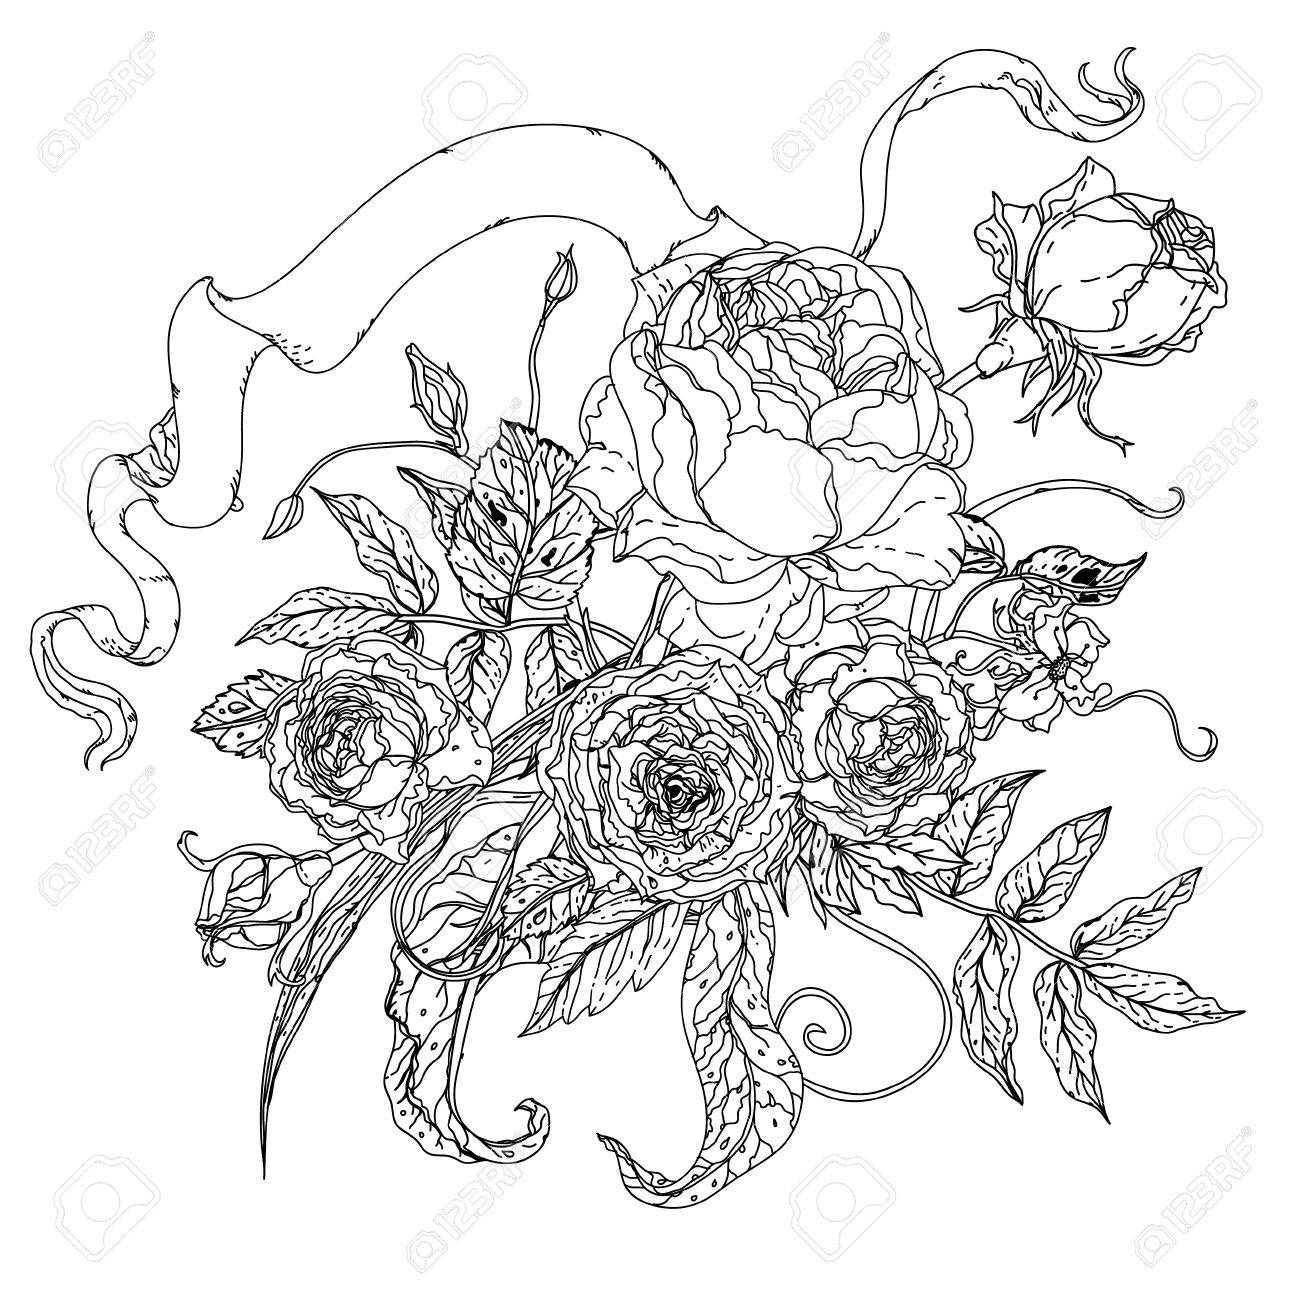 Zen coloring flowers - Adult Coloring Pictures Of Flowers Uncolored Flowers And Ribbon For Text Adult Coloring Book Famous